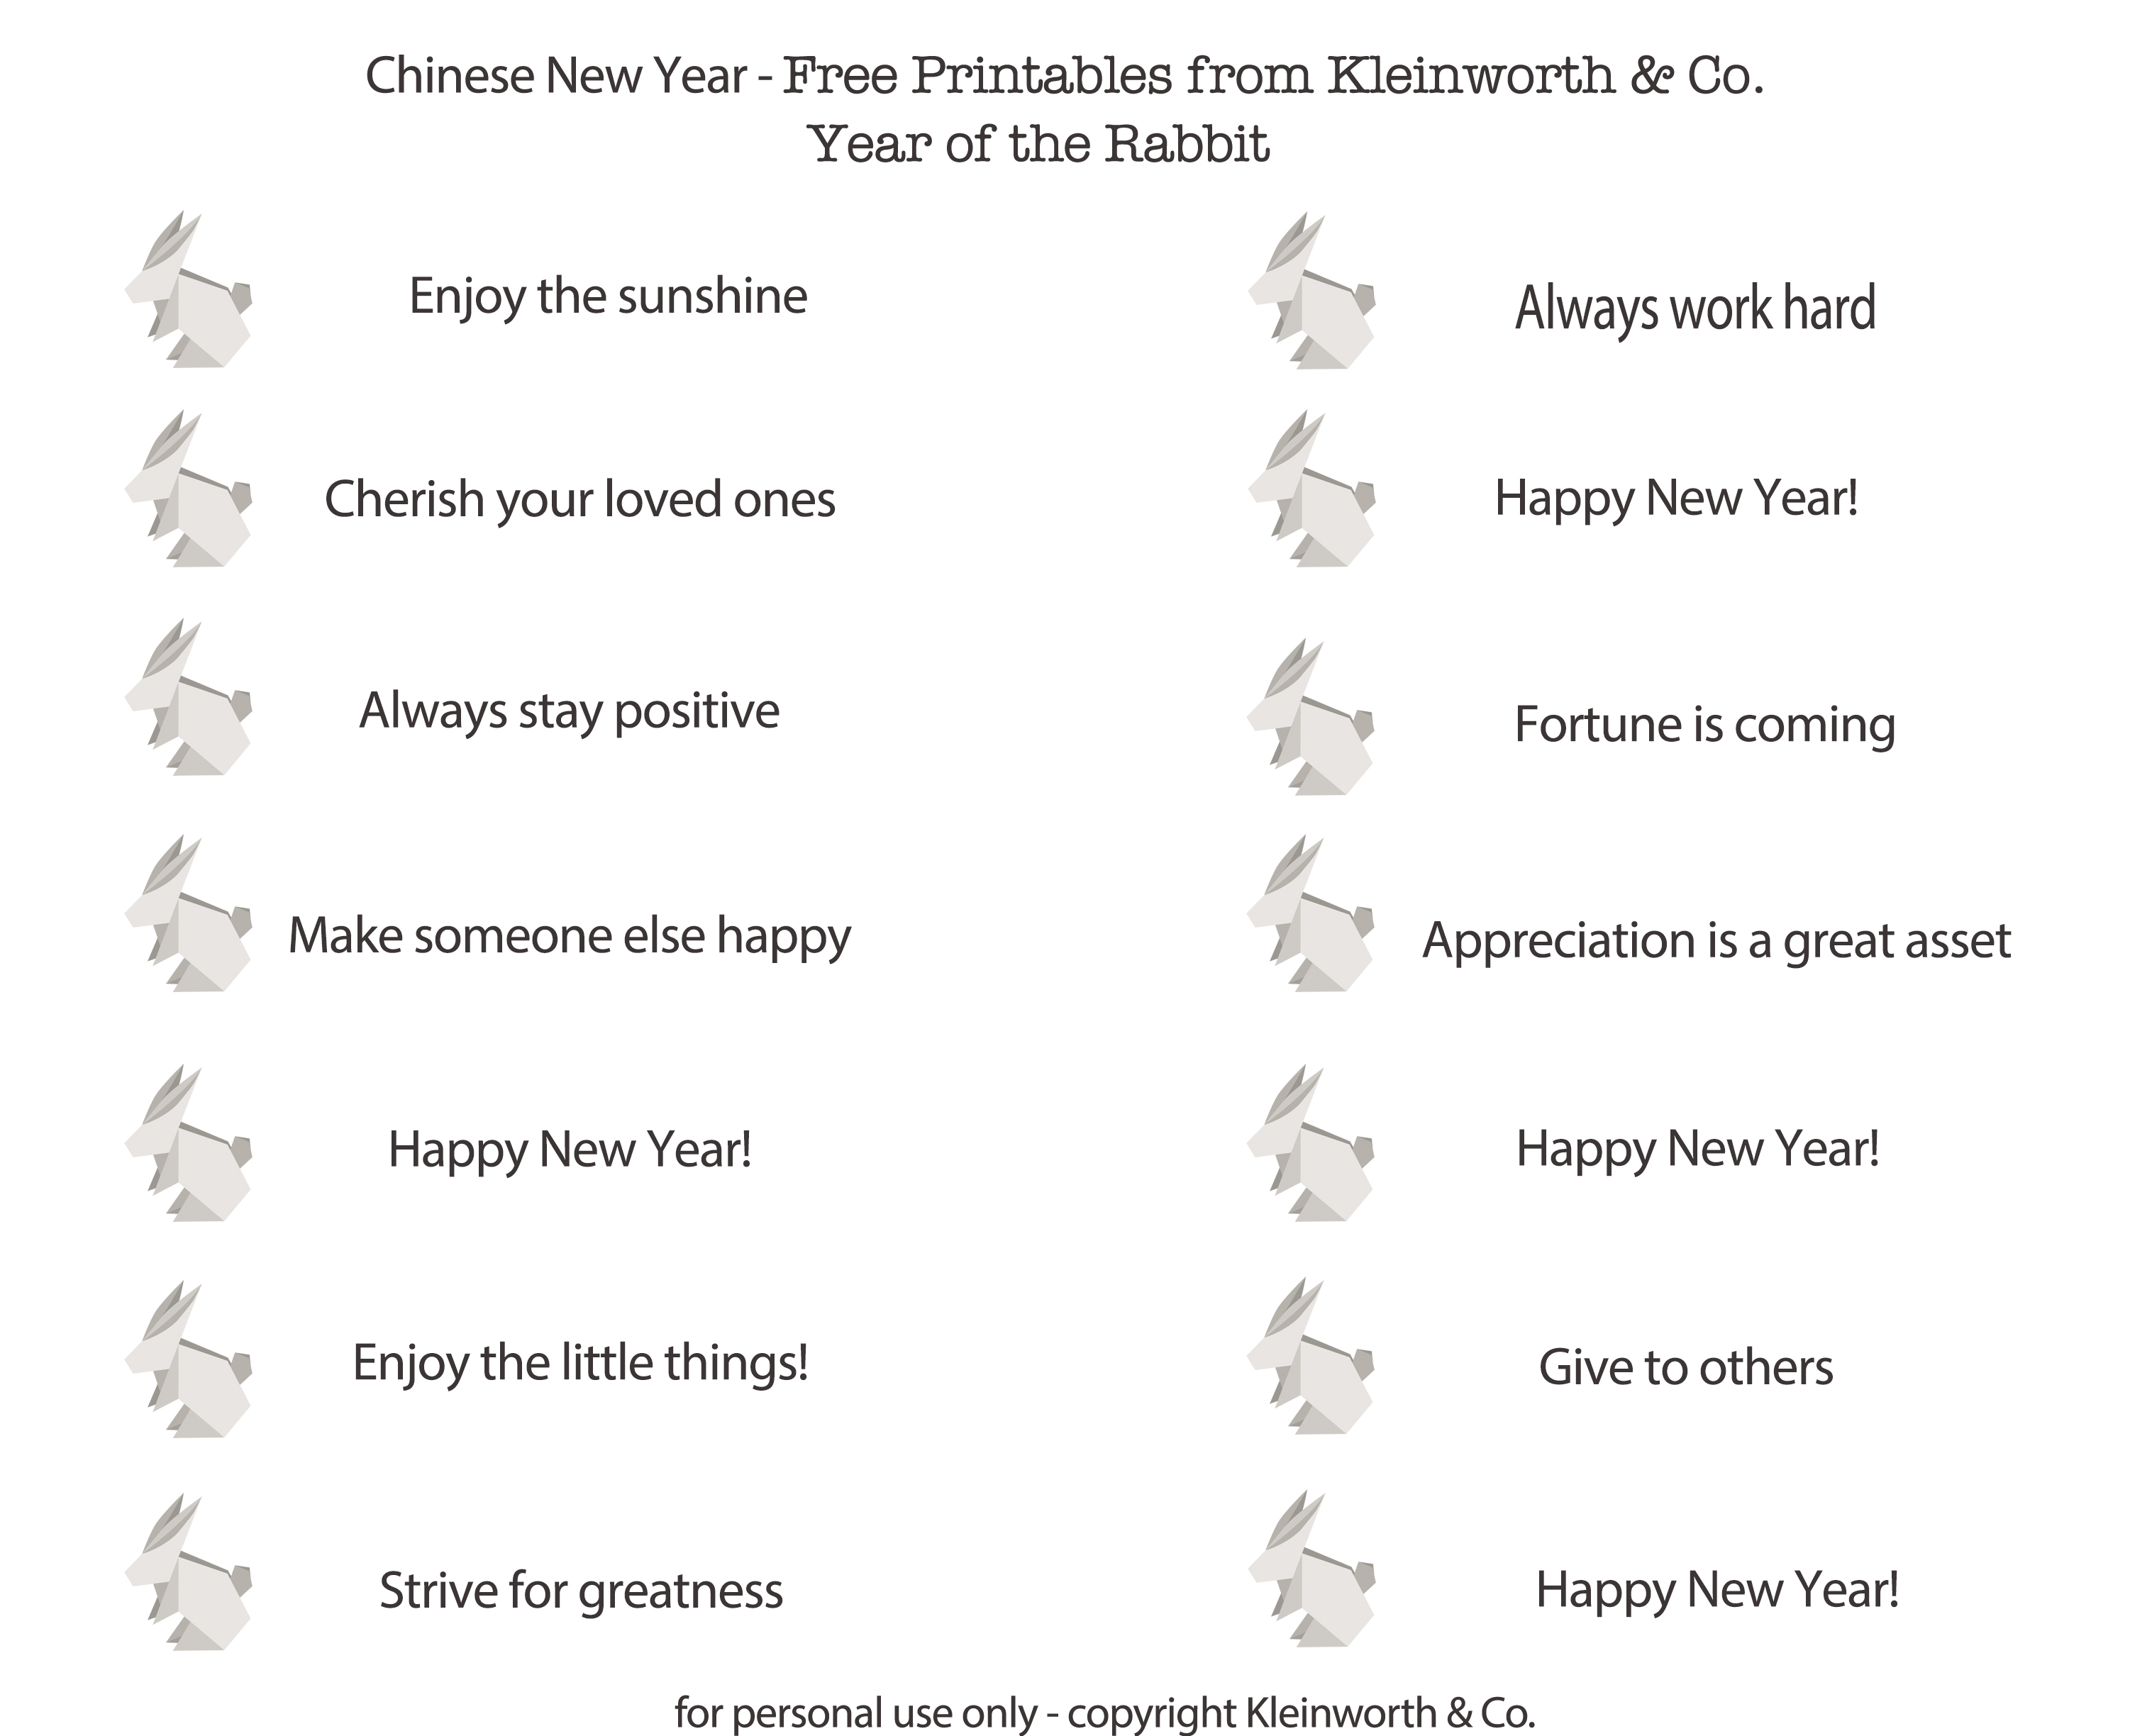 photo regarding Printable Fortune Cookie Sayings identify Do-it-yourself Fortune Cookies Totally free Printable - Kleinworth Co